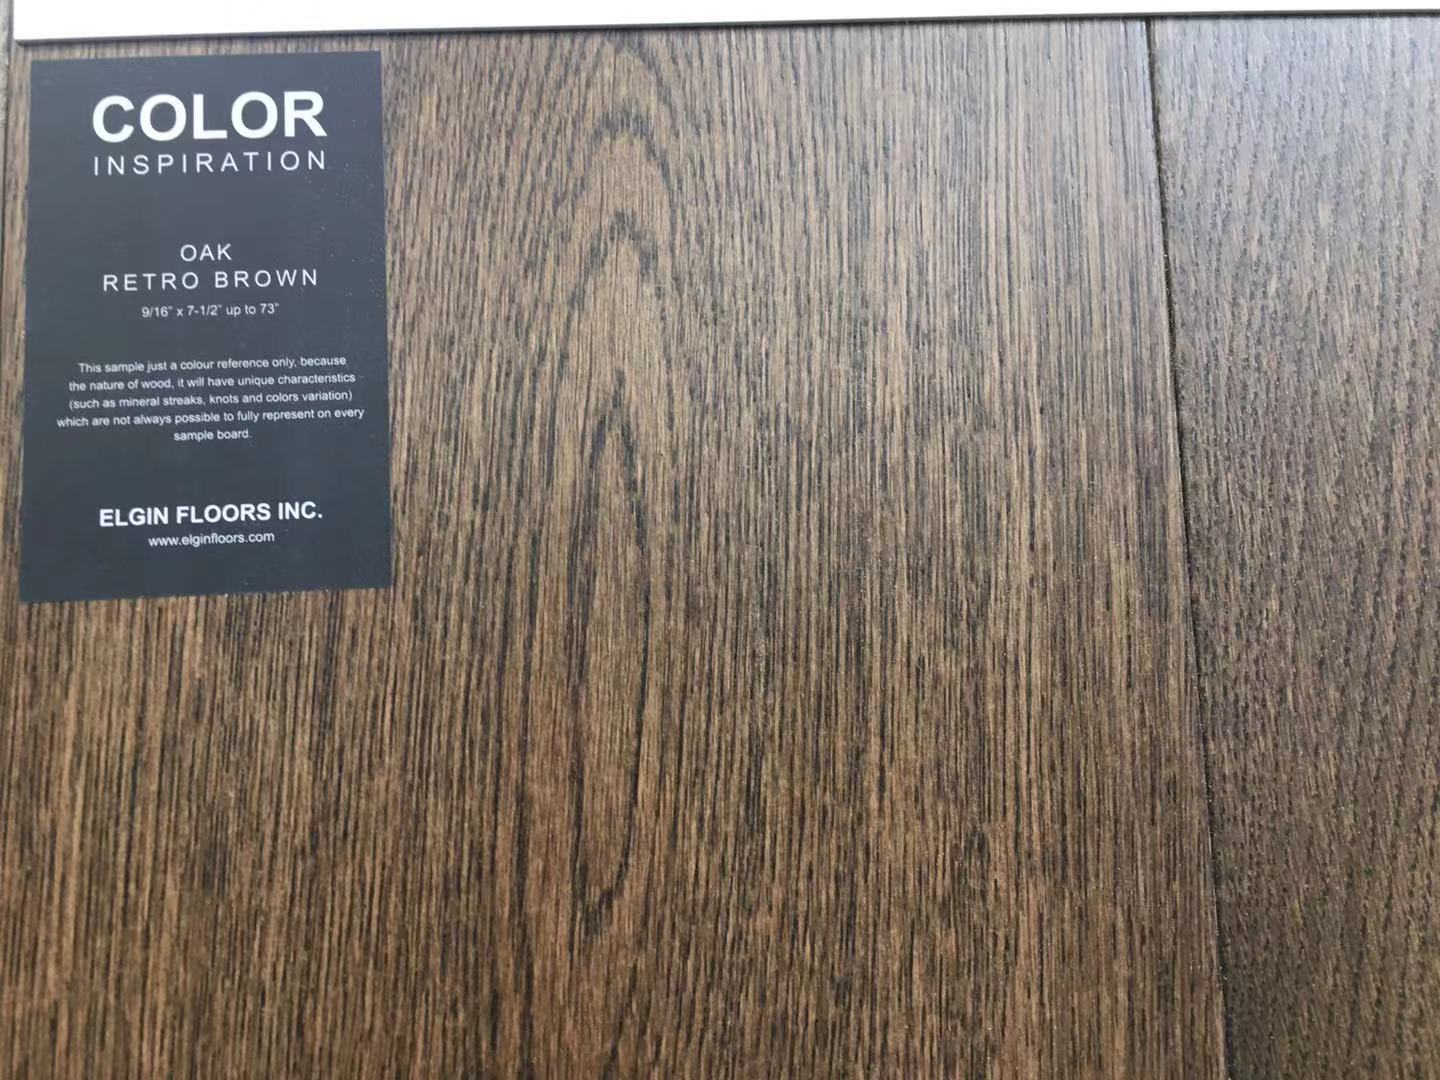 "SPX ORDER 1-2DAYS ENGINEERED HARDWOOD 7-1/2"" WIDTH, 2MM TOP LAYER OAK RETRO BROWN $4.26/SF 23.33SF/BOX $99.49/BOX# - Home Idol Home Improvement Outlet"